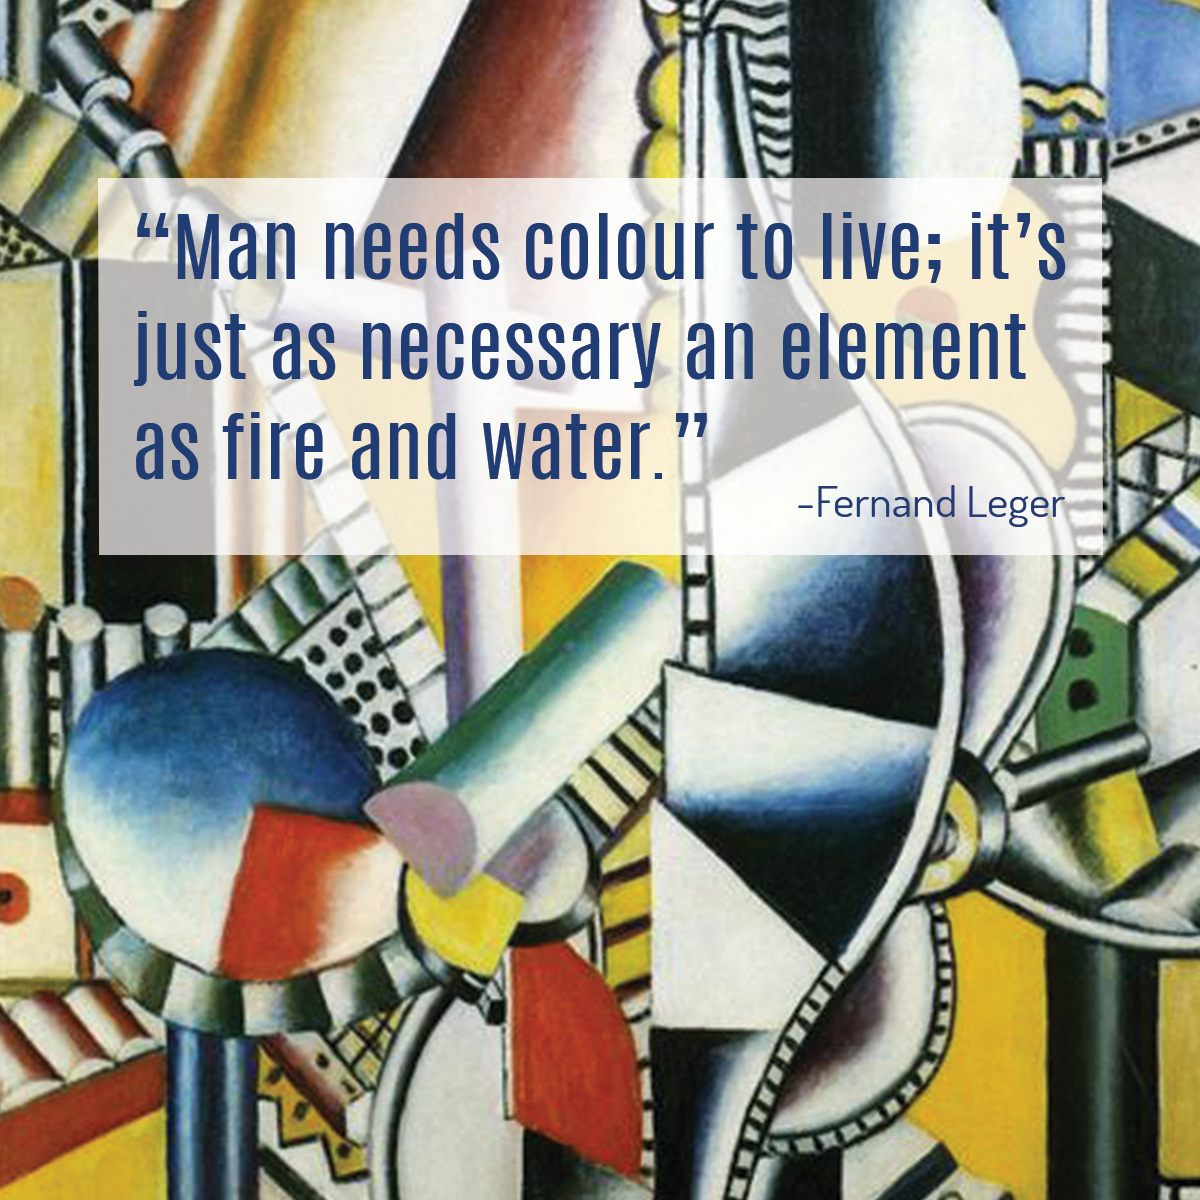 """""""Man needs colour to live; it's just as necessary an element as fire and water."""" - Fernand Leger"""